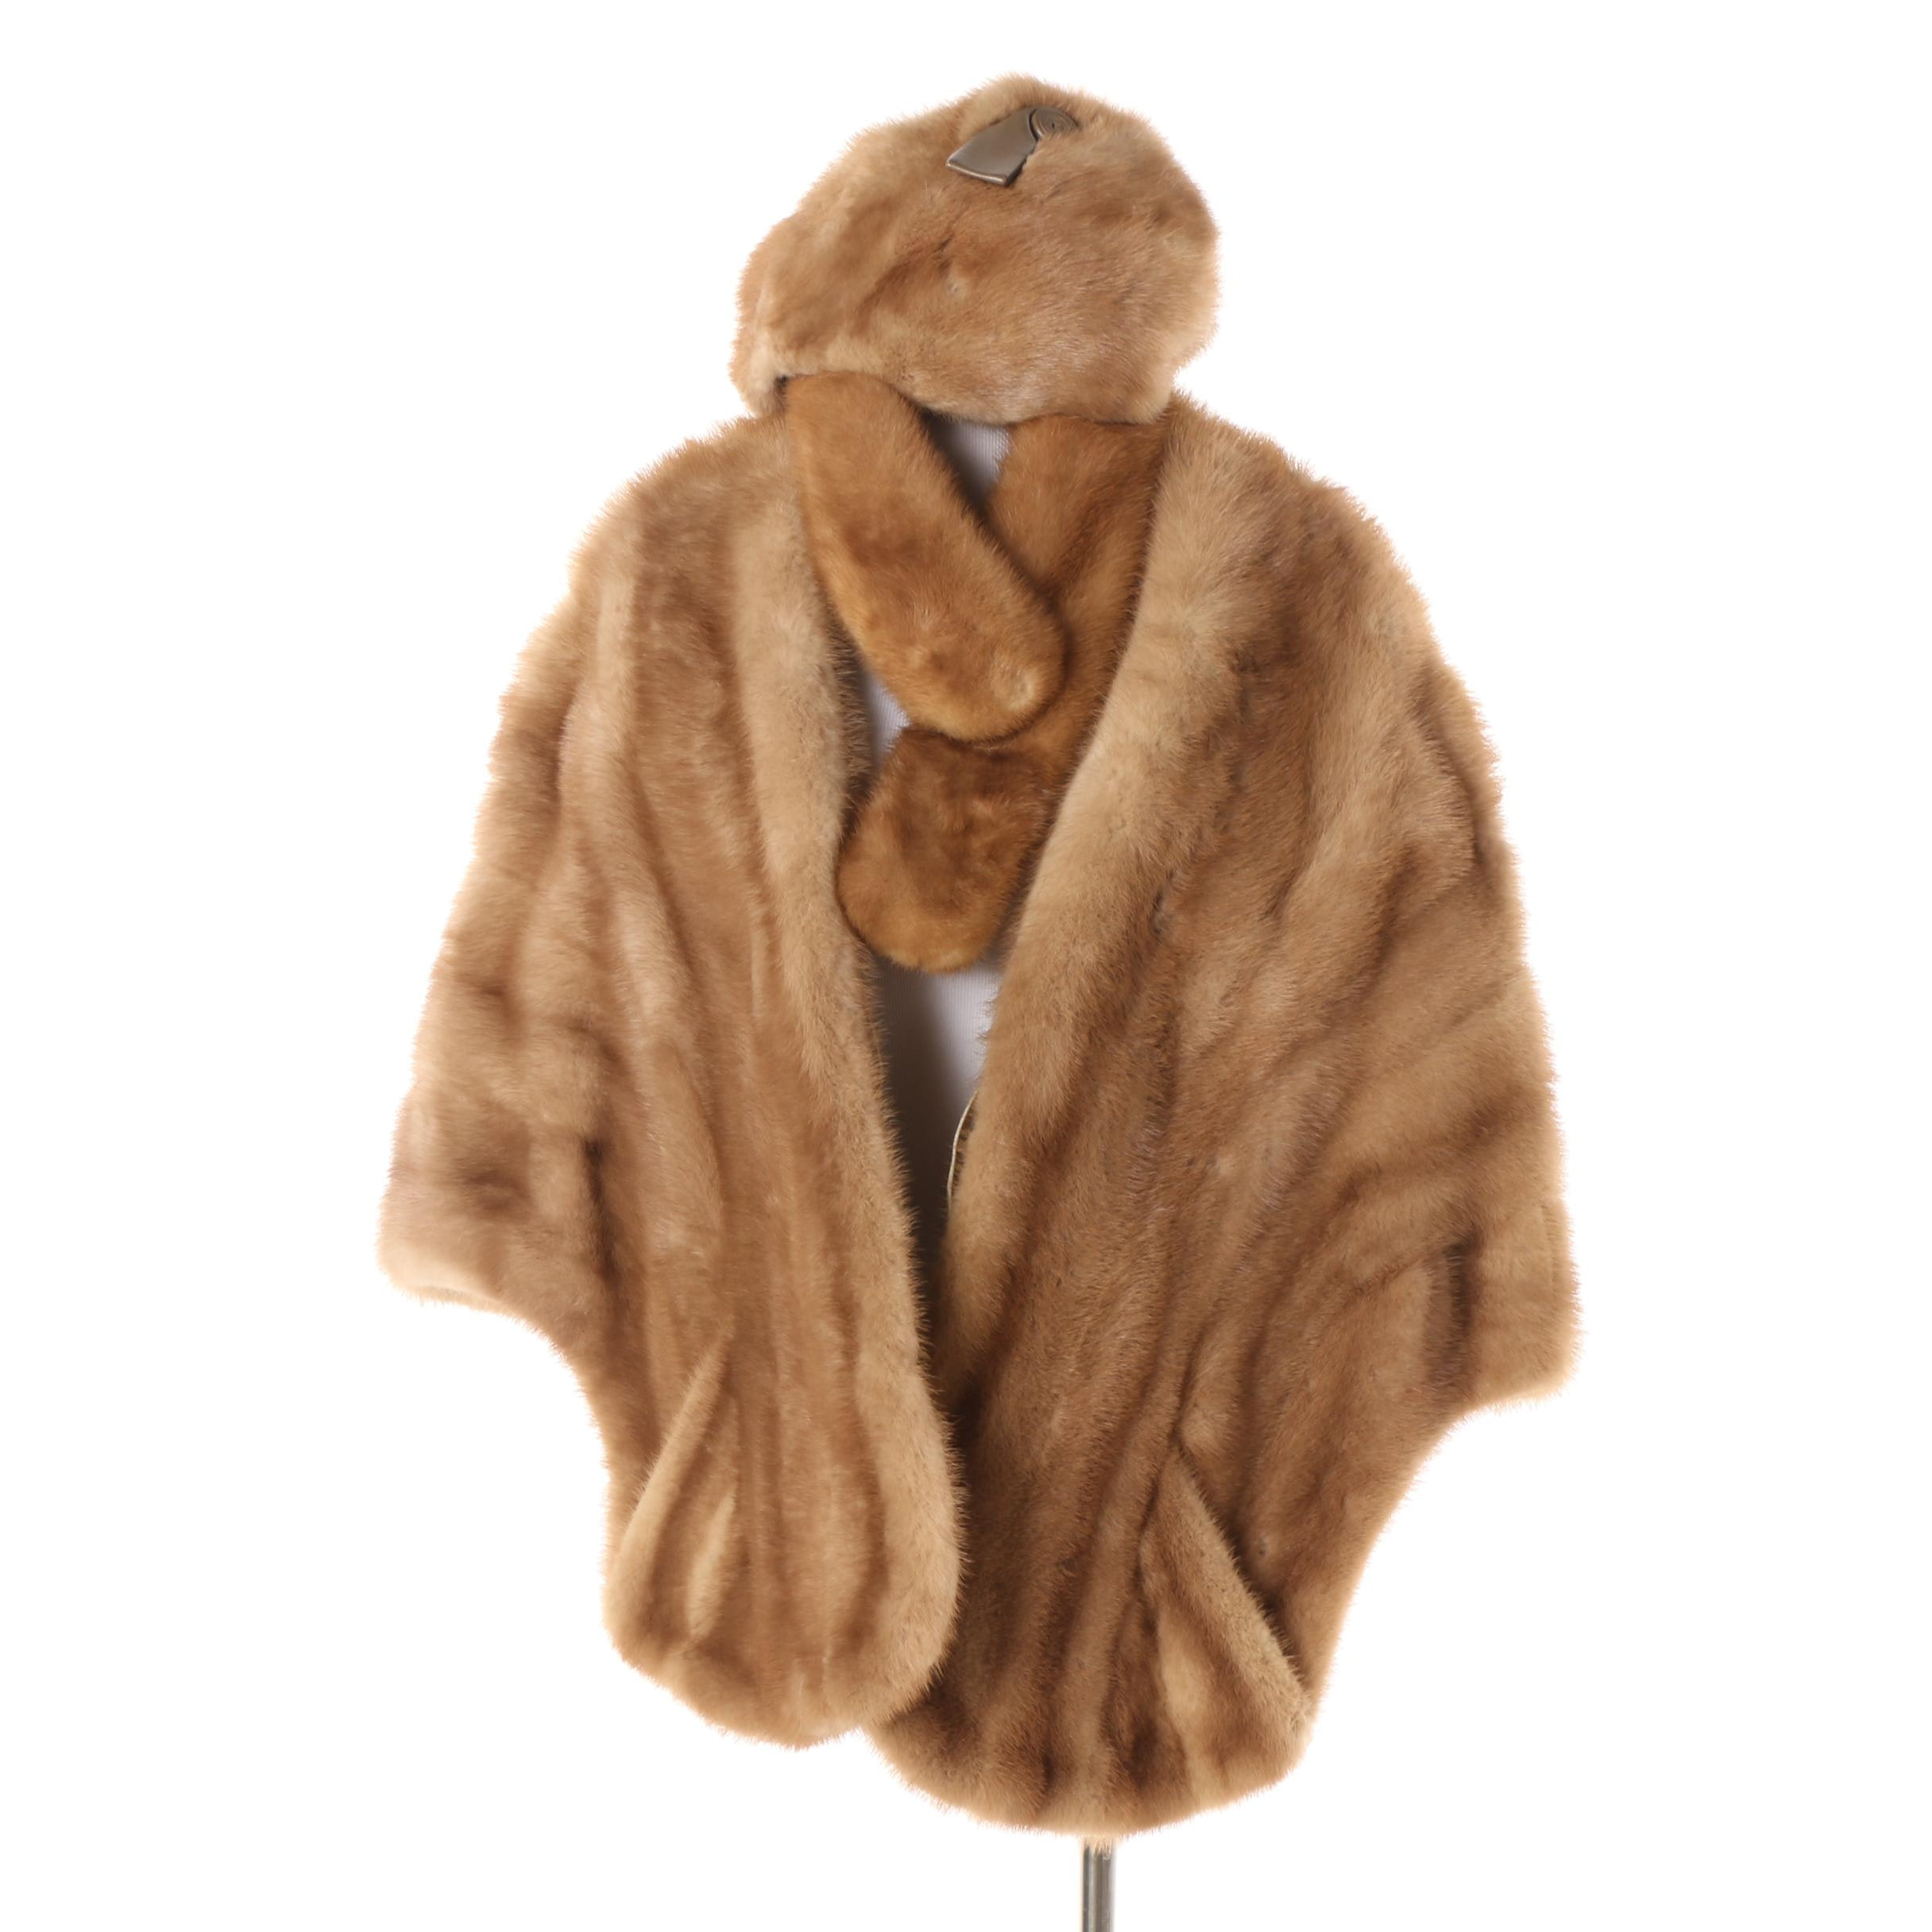 Vintage Glück's Mink Fur Stole with Mink Fur Cap and Collar